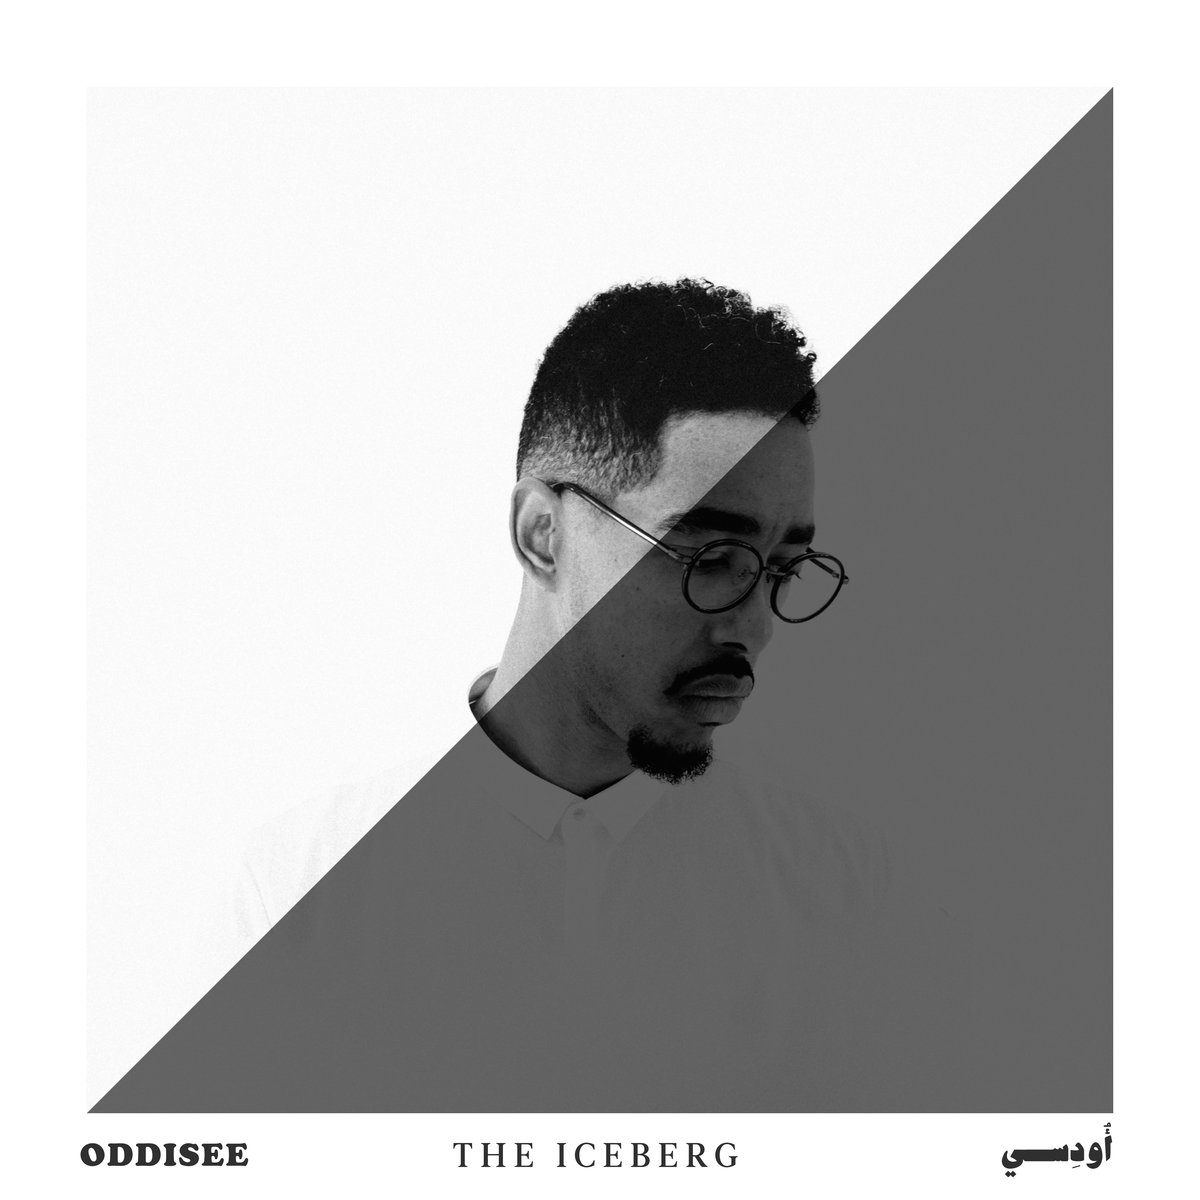 Oddisee: The Iceberg album cover